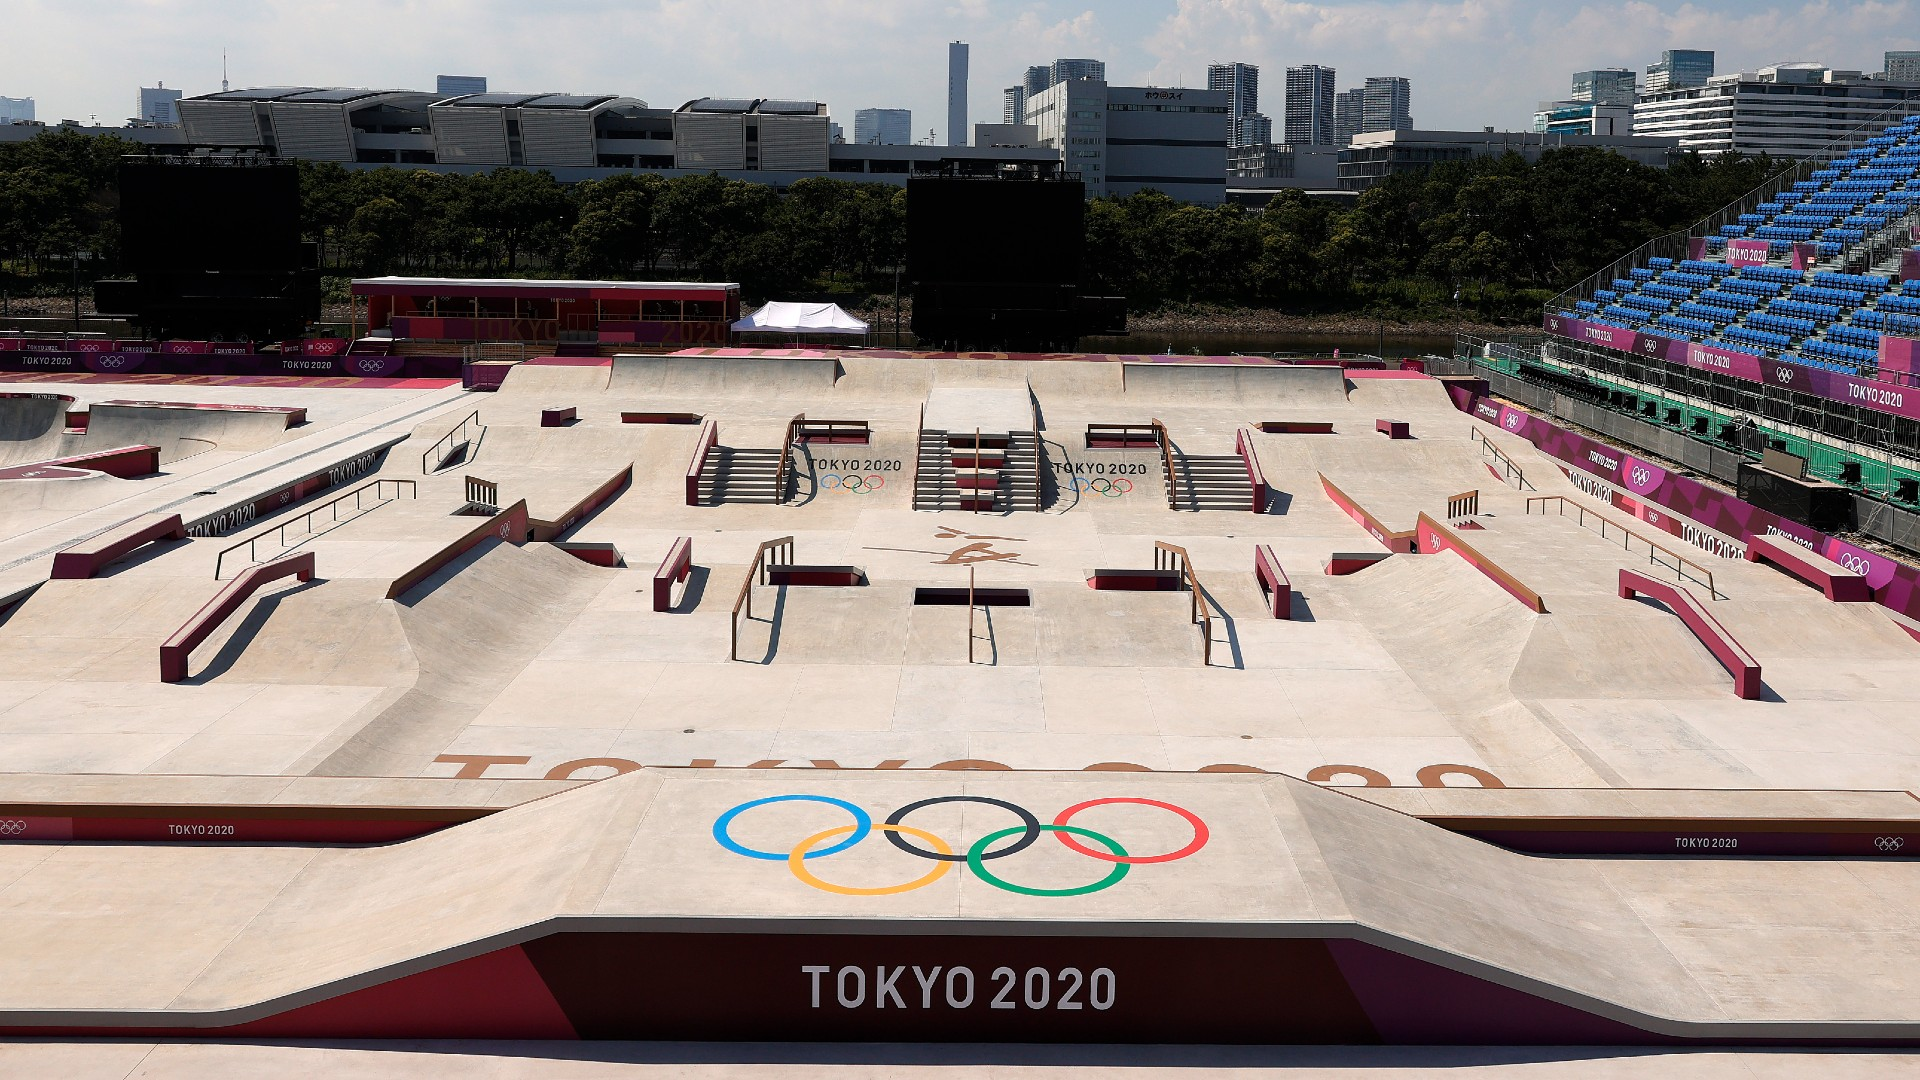 New Olympic sports explained: Karate, surfing, skateboarding and sport climbing debut at 2021 Games